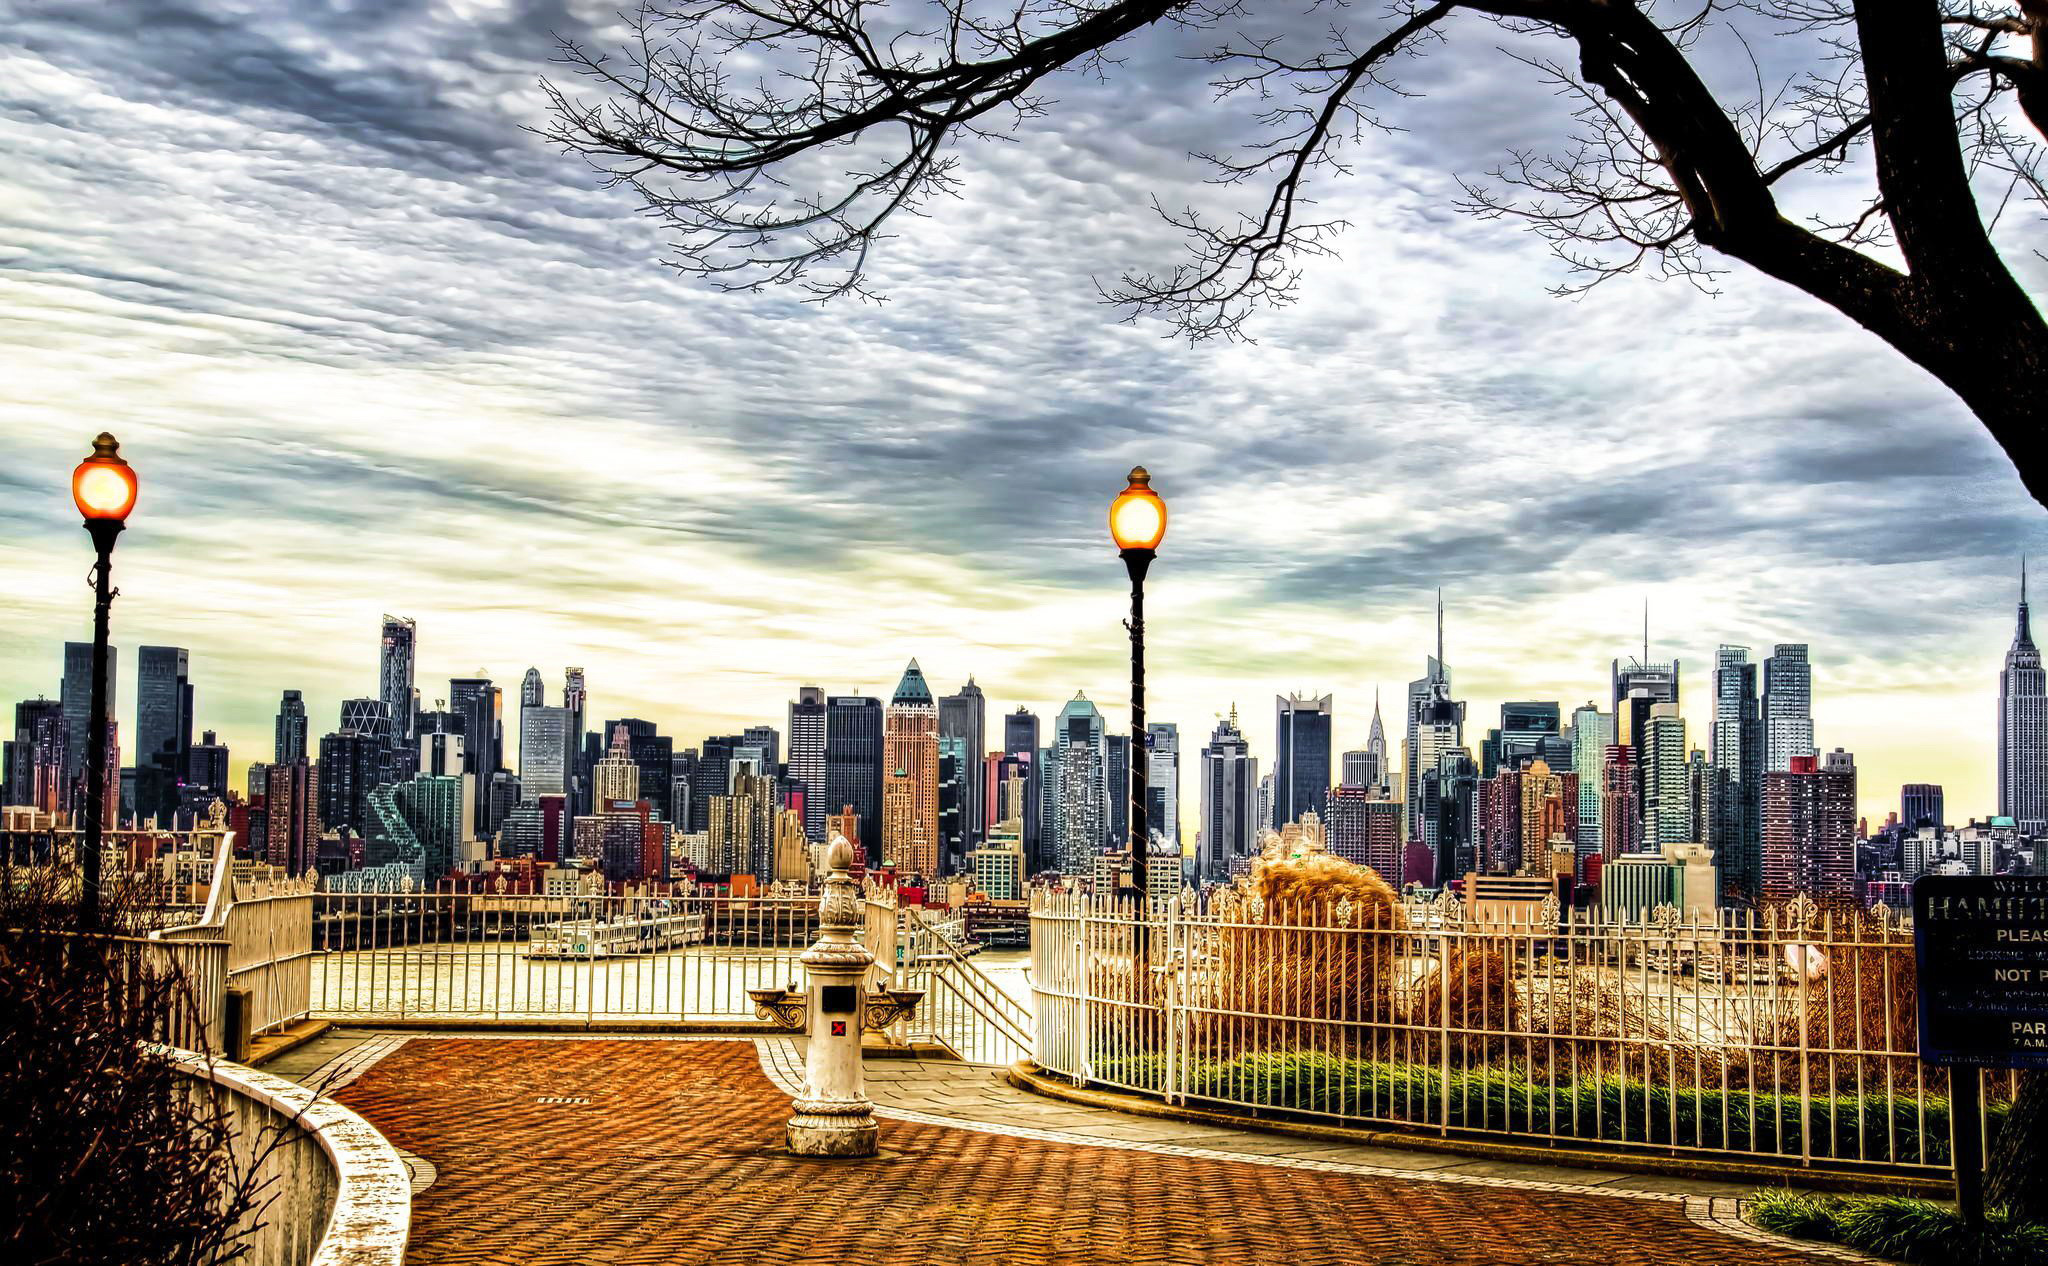 new york city street wallpaper photos hd high definition windows 10 mac  apple colourful images backgrounds